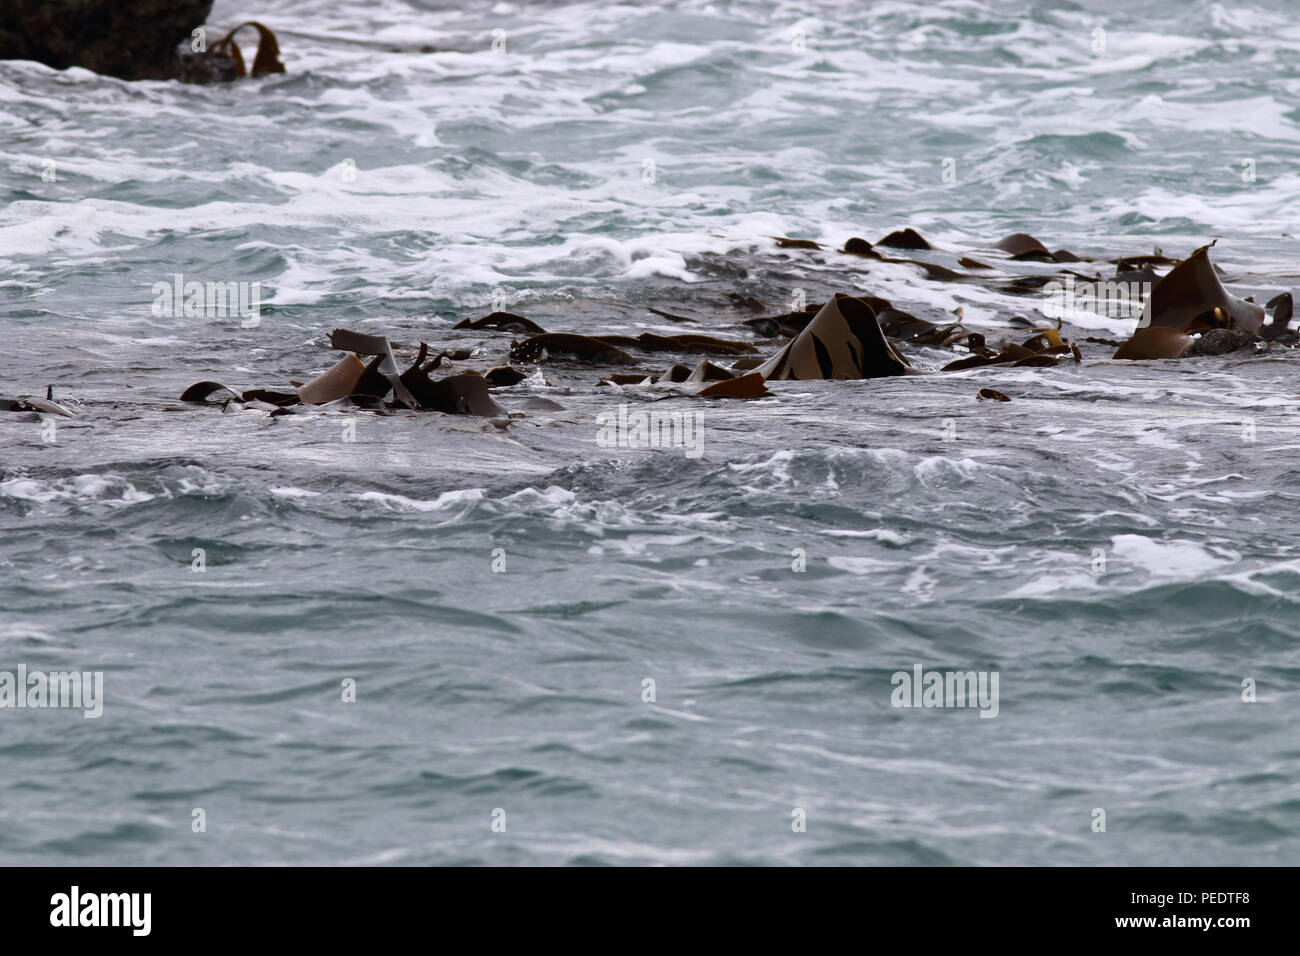 Sea Kelp, swelling around in the breaking water, with the wind turning the kelp leaves exposing them to the air - Stock Image